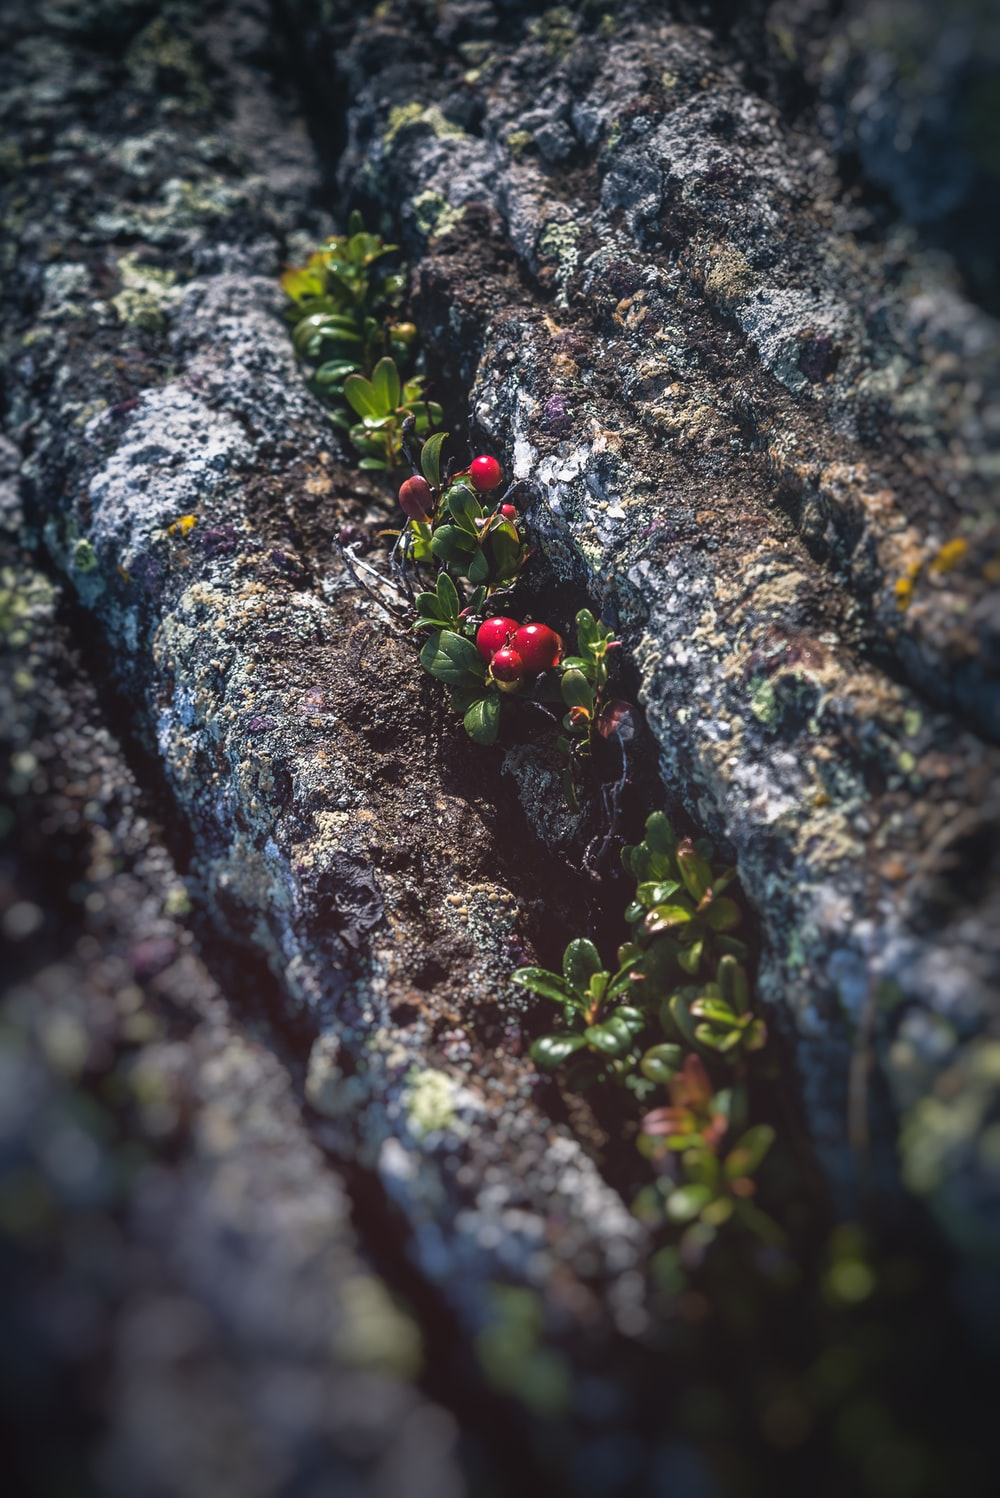 red fruits on brown and black rock